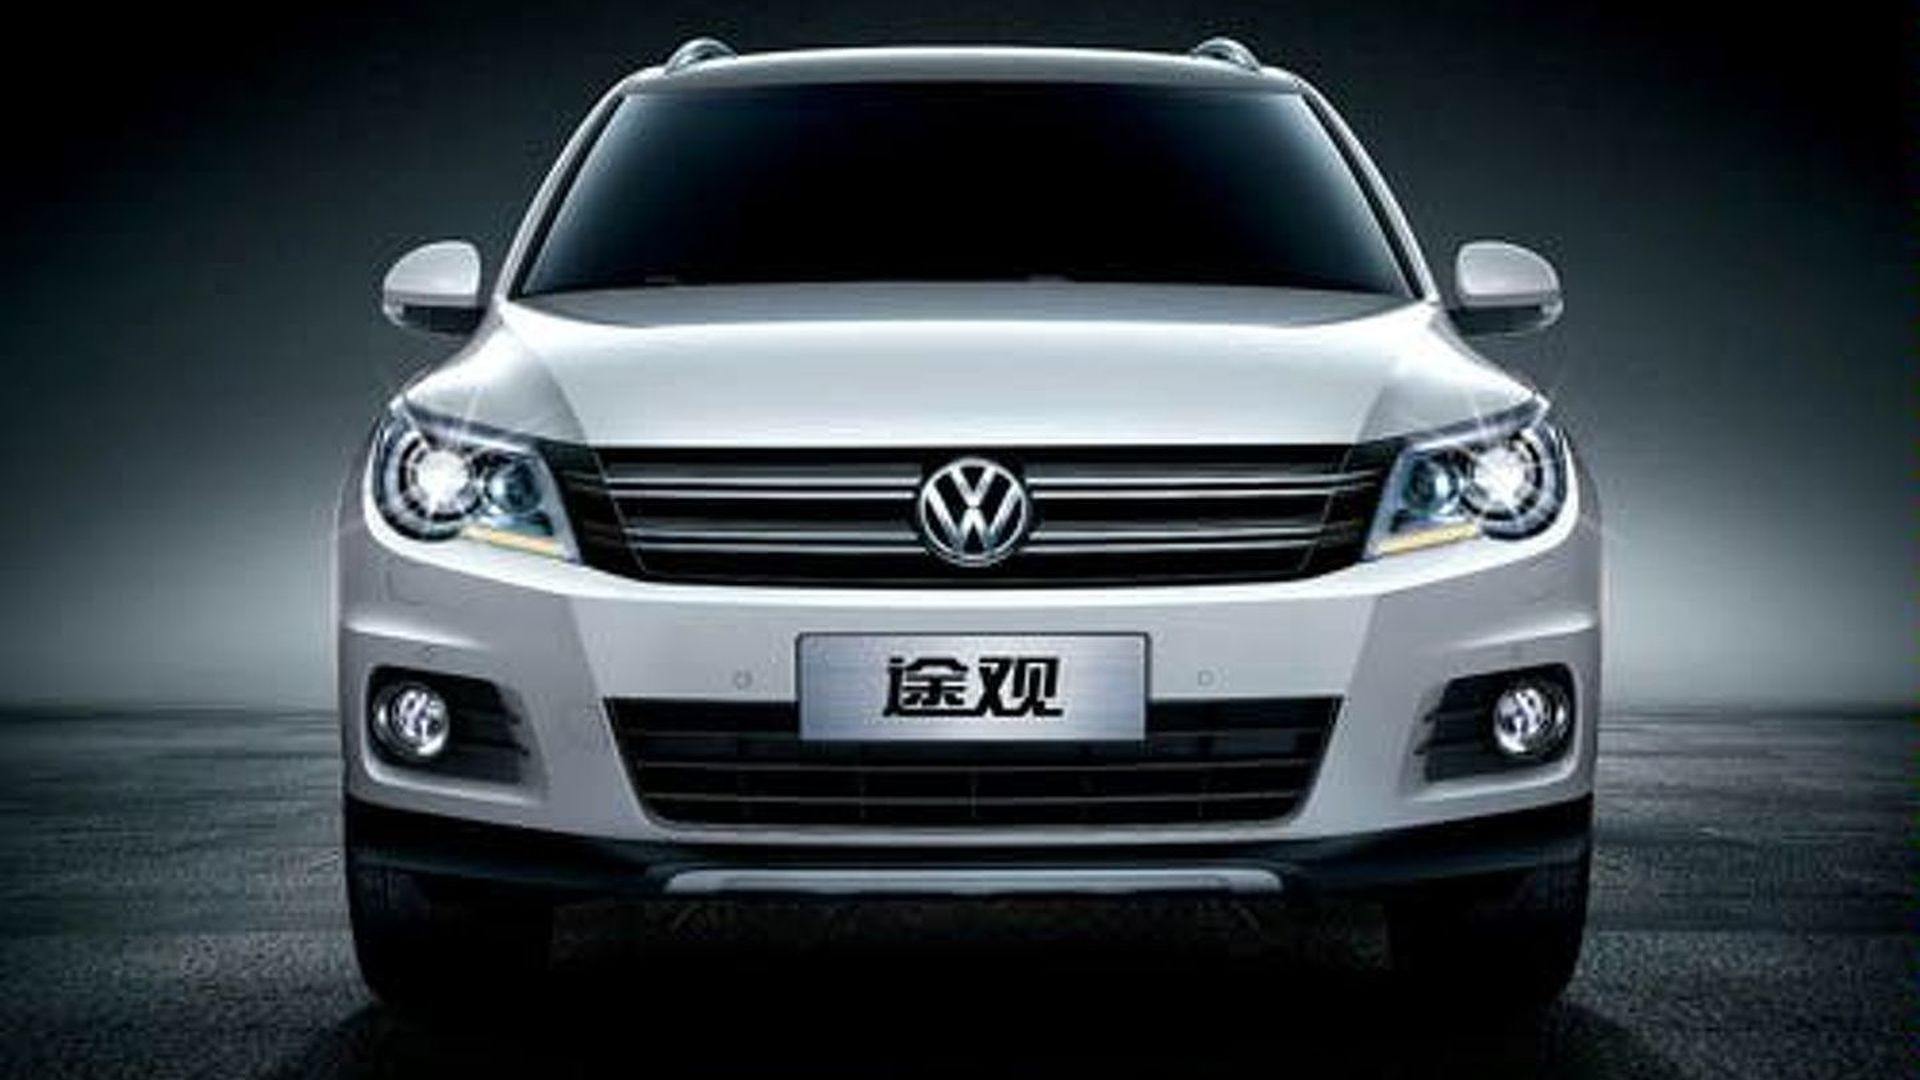 Volkswagen Tiguan Facelift Unveiled at Guangzhou Auto Show